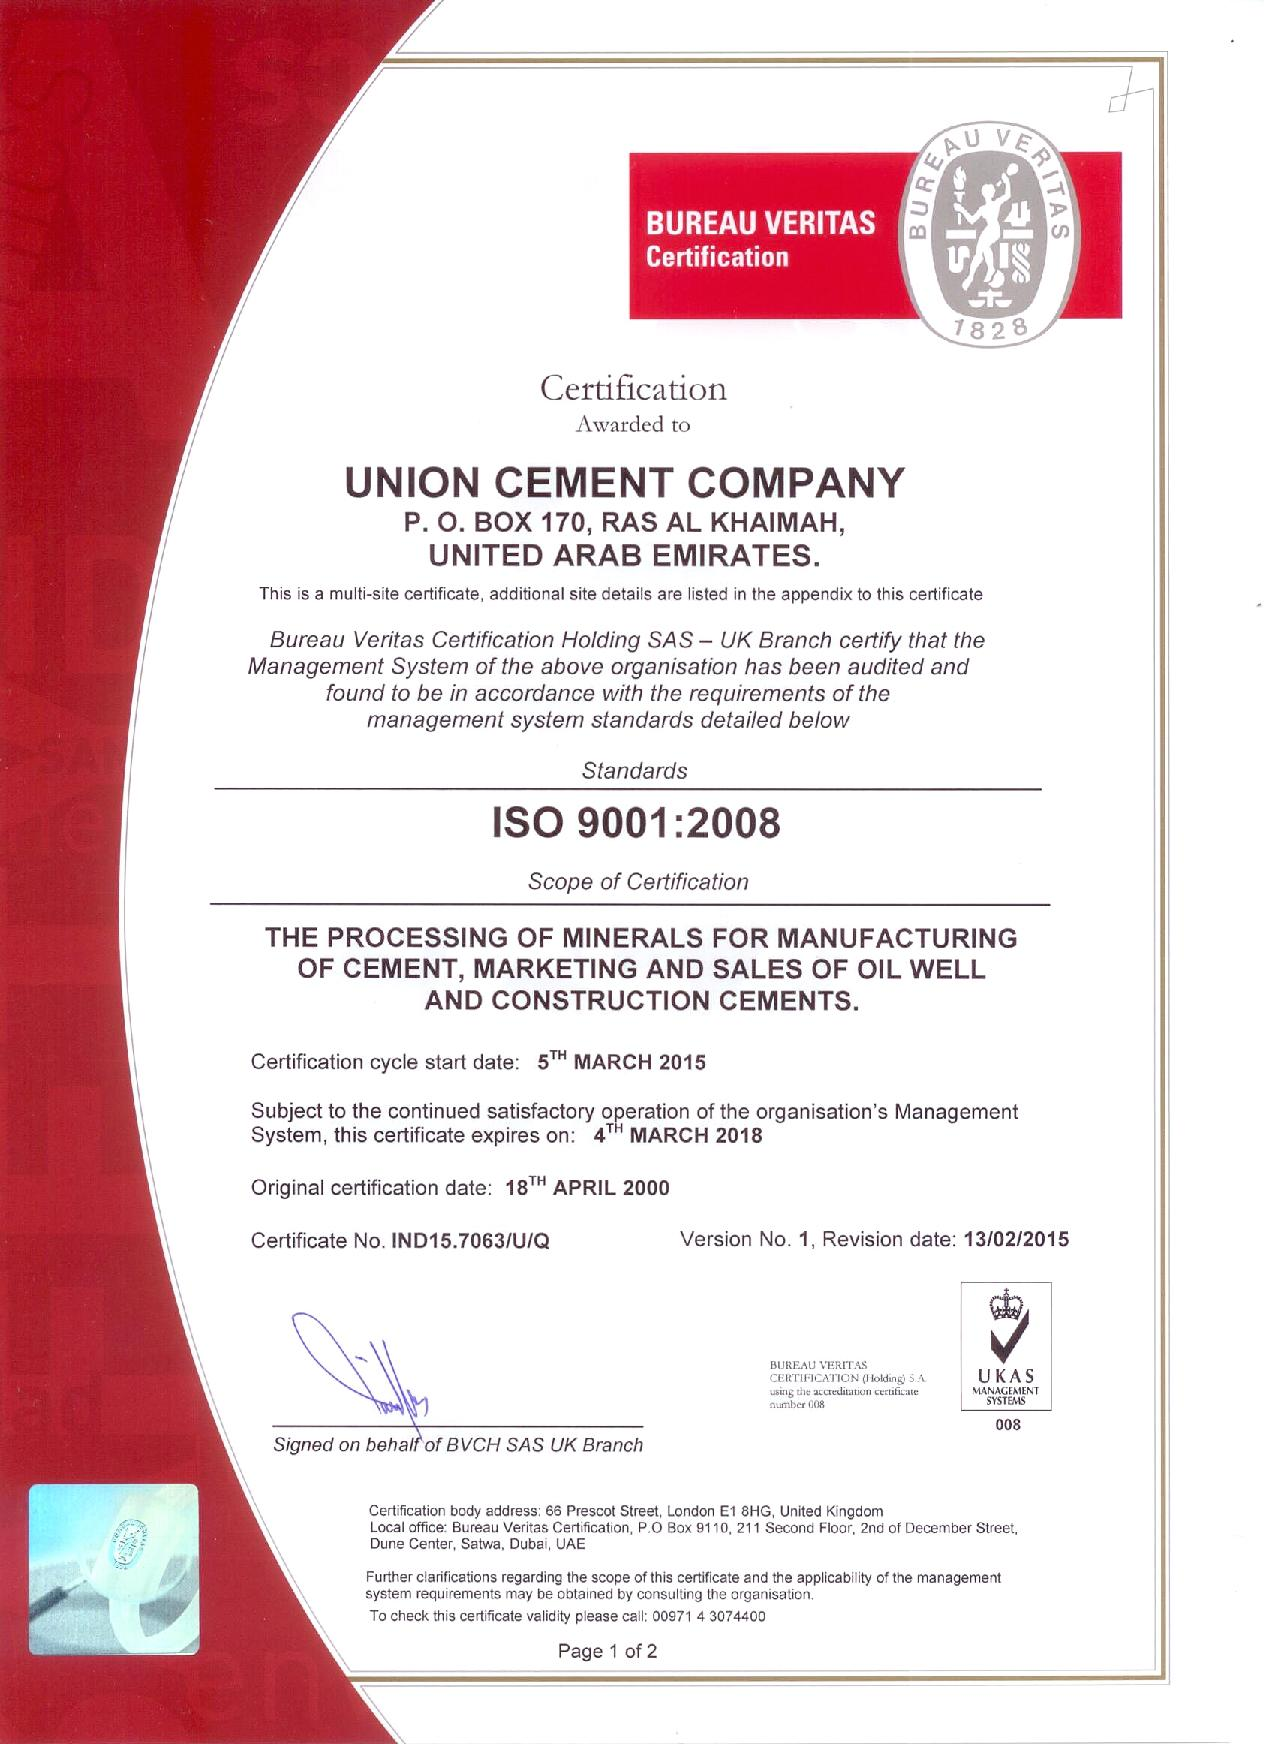 Welcome to Union Cement Company